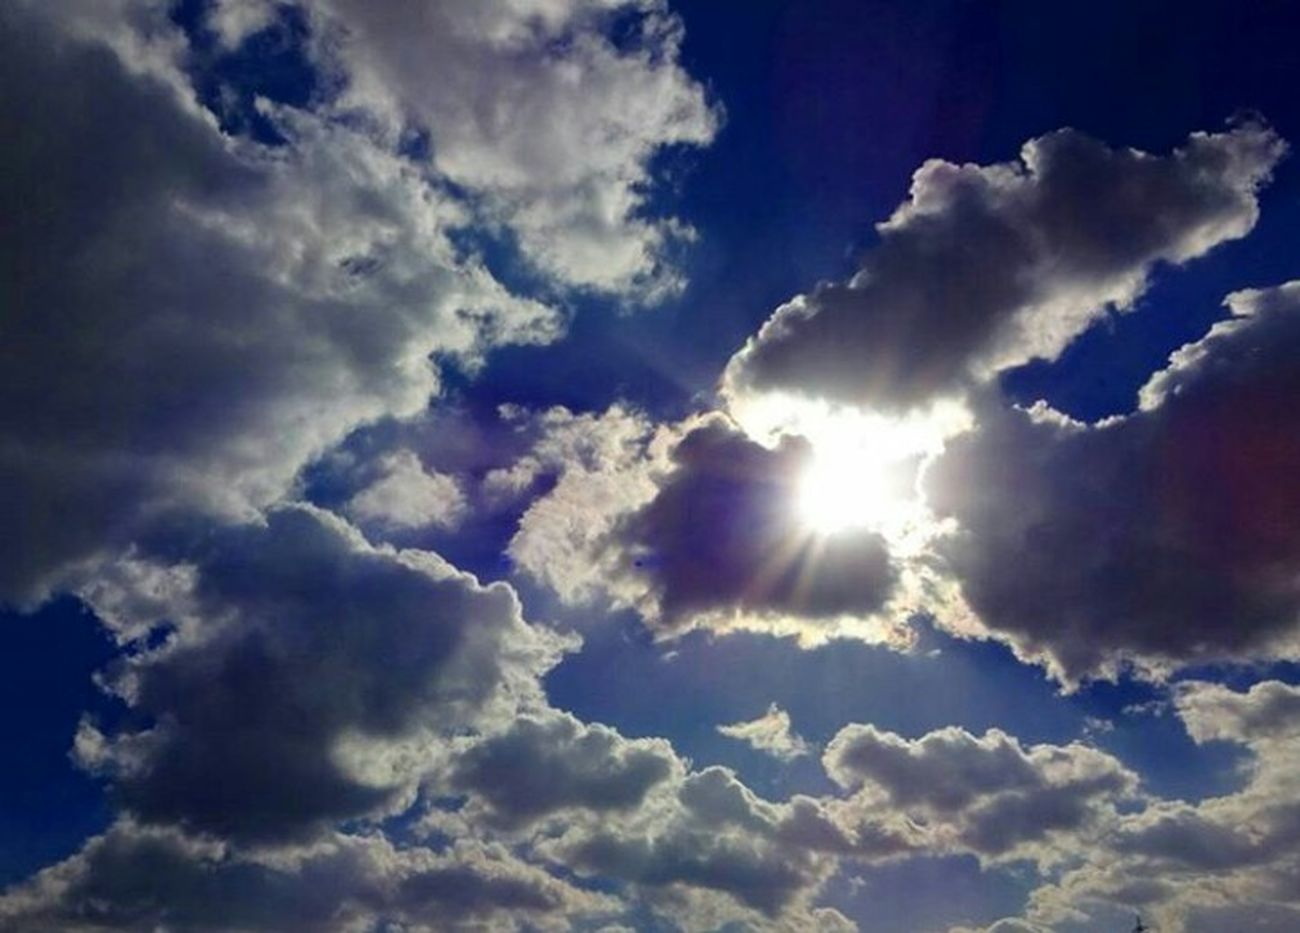 Cloud - Sky Sky Blue Low Angle View Beauty In Nature Dramatic Sky Nature Day Sun Beauty In Nature Eye4photography  EyeEm Best Shots - Nature EyeEm Nature Lover Hello World Love It EyeEm Best Shots 3XSPUnity Relaxing Taking Photos Winter 空 Winter_collection Sky_collection EyeEmNewHere